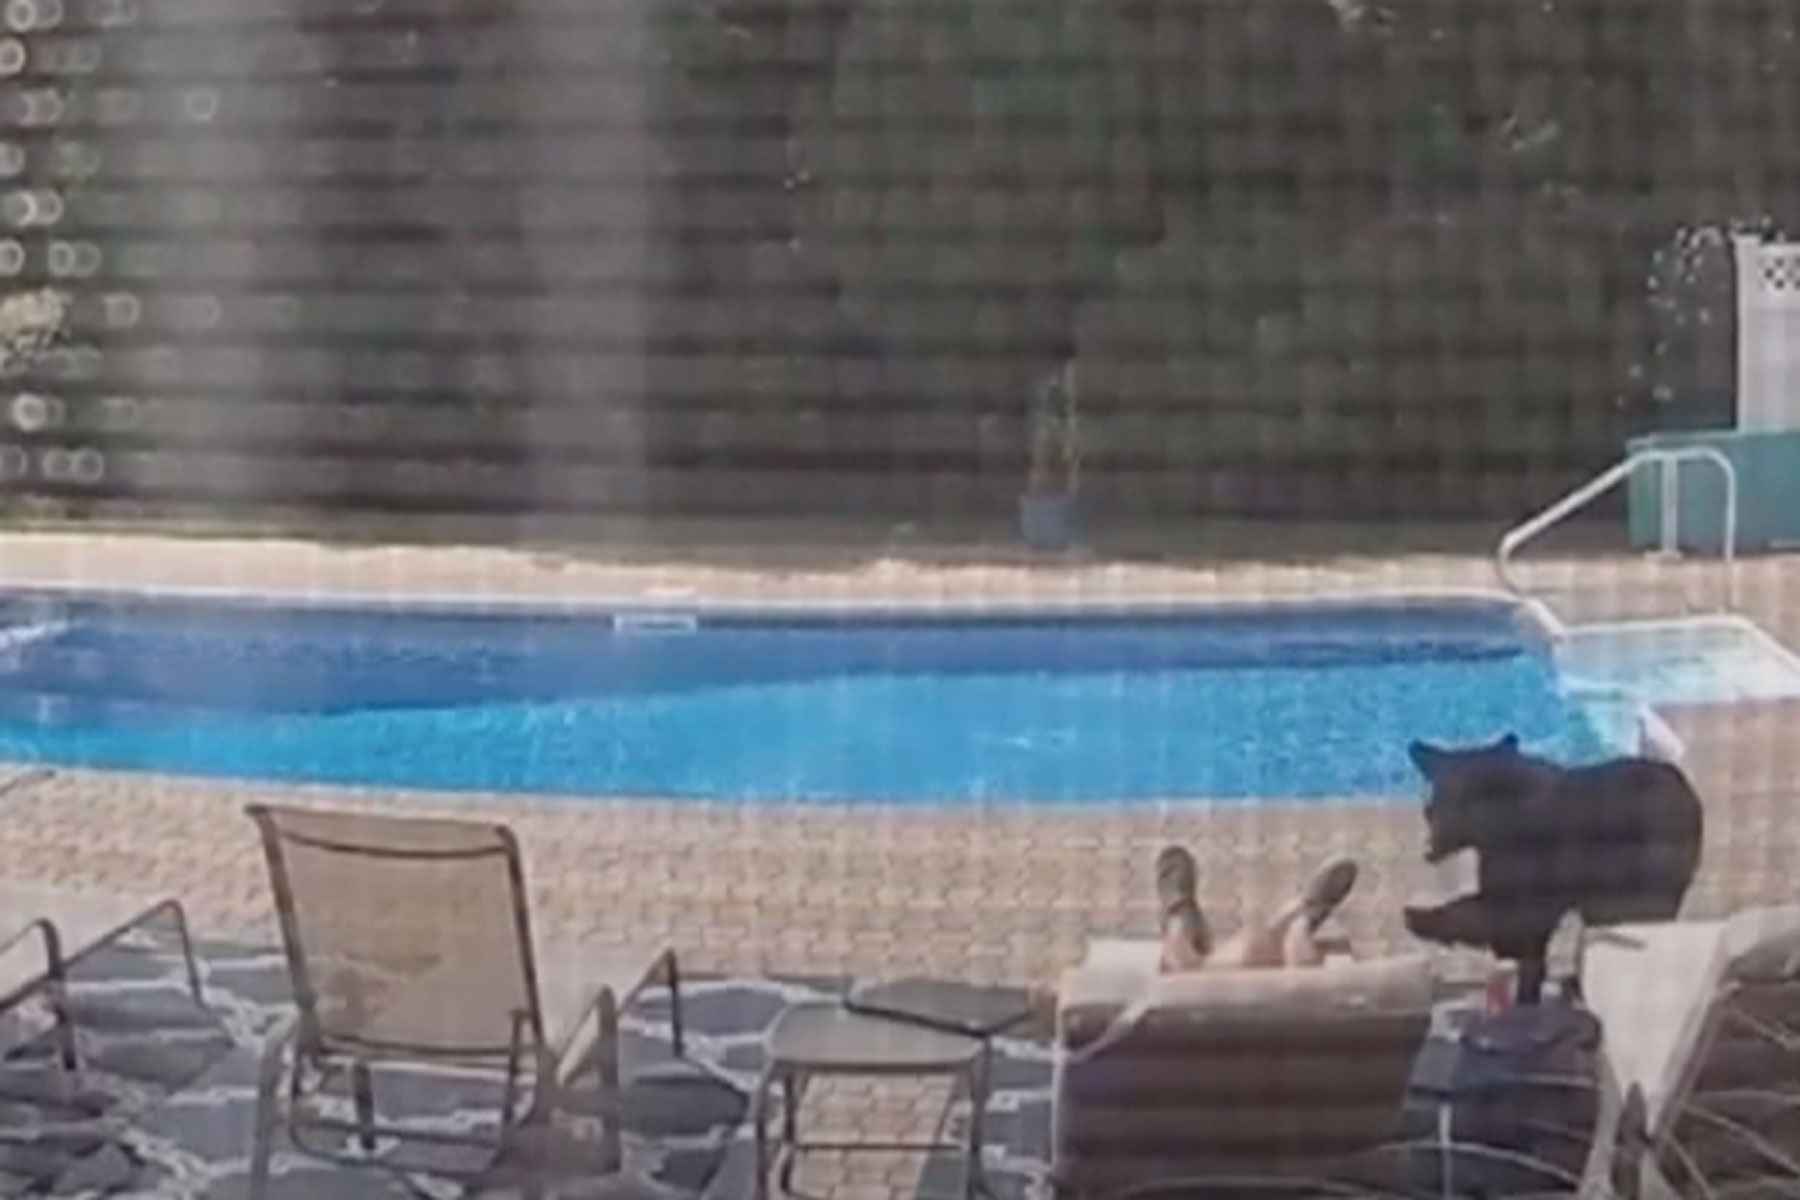 black bear and man in pool area